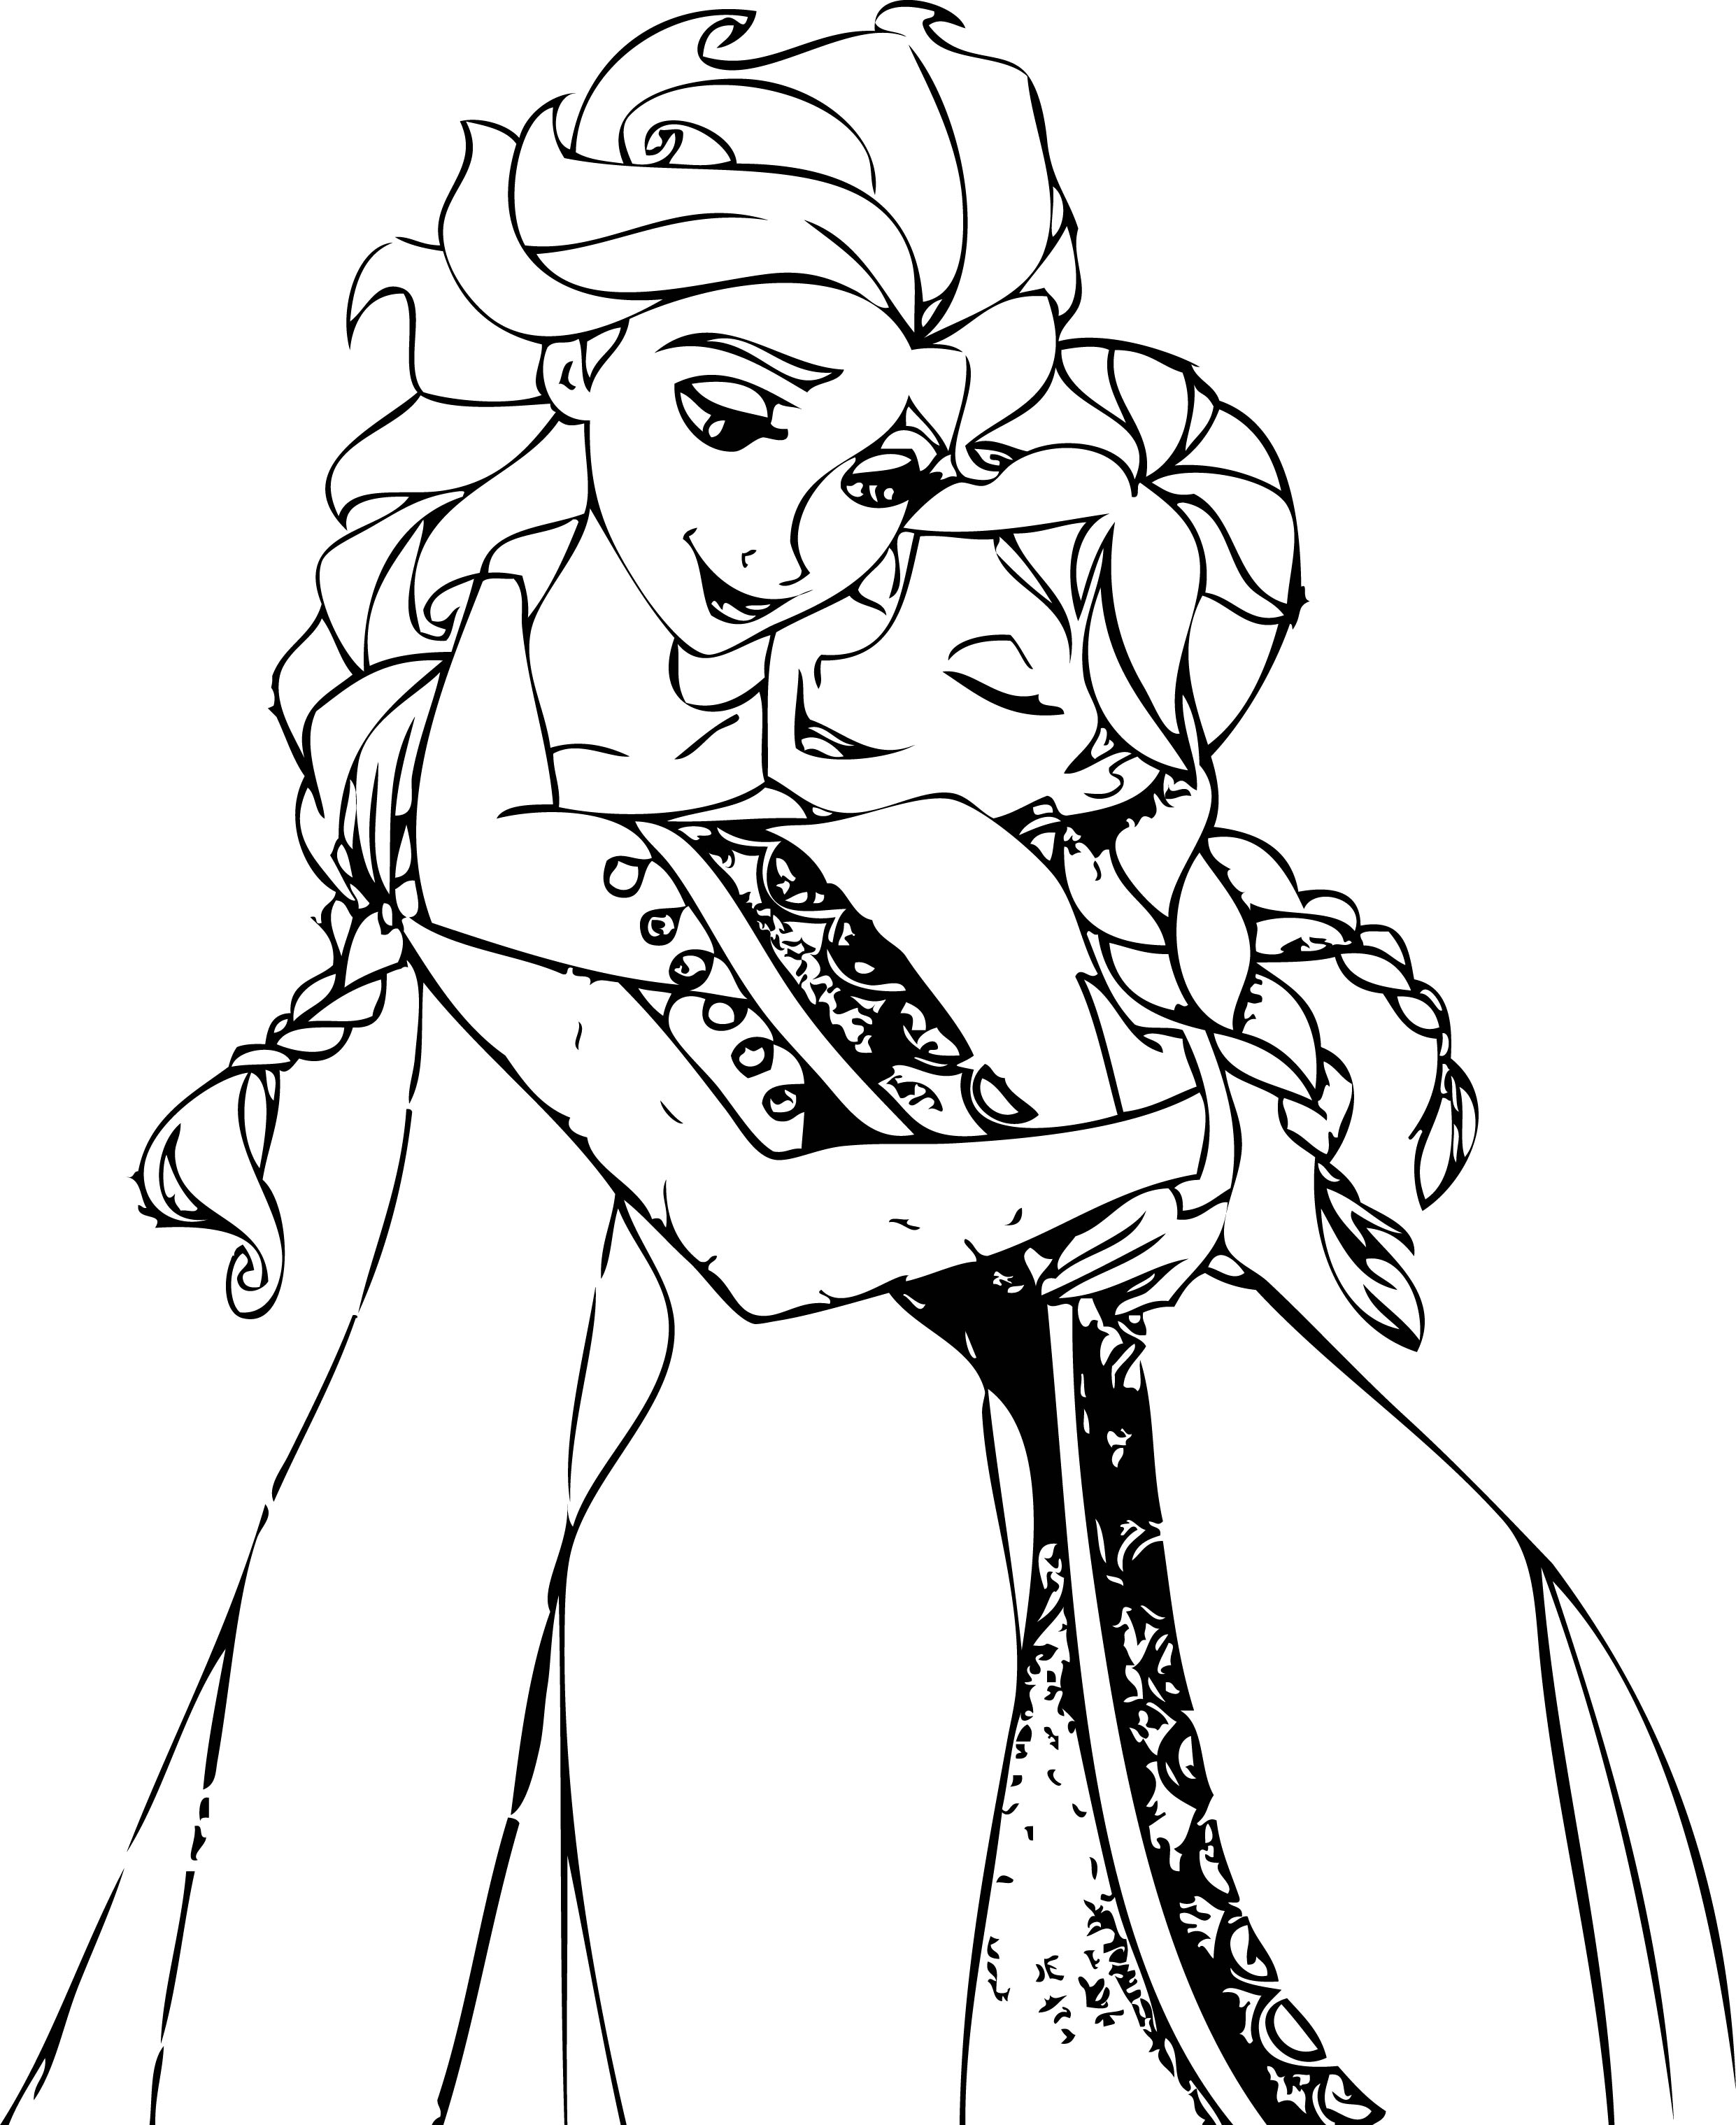 2482x3038 Coloring Pages Disney Frozen Cartoon Elsa And Anna Printable For